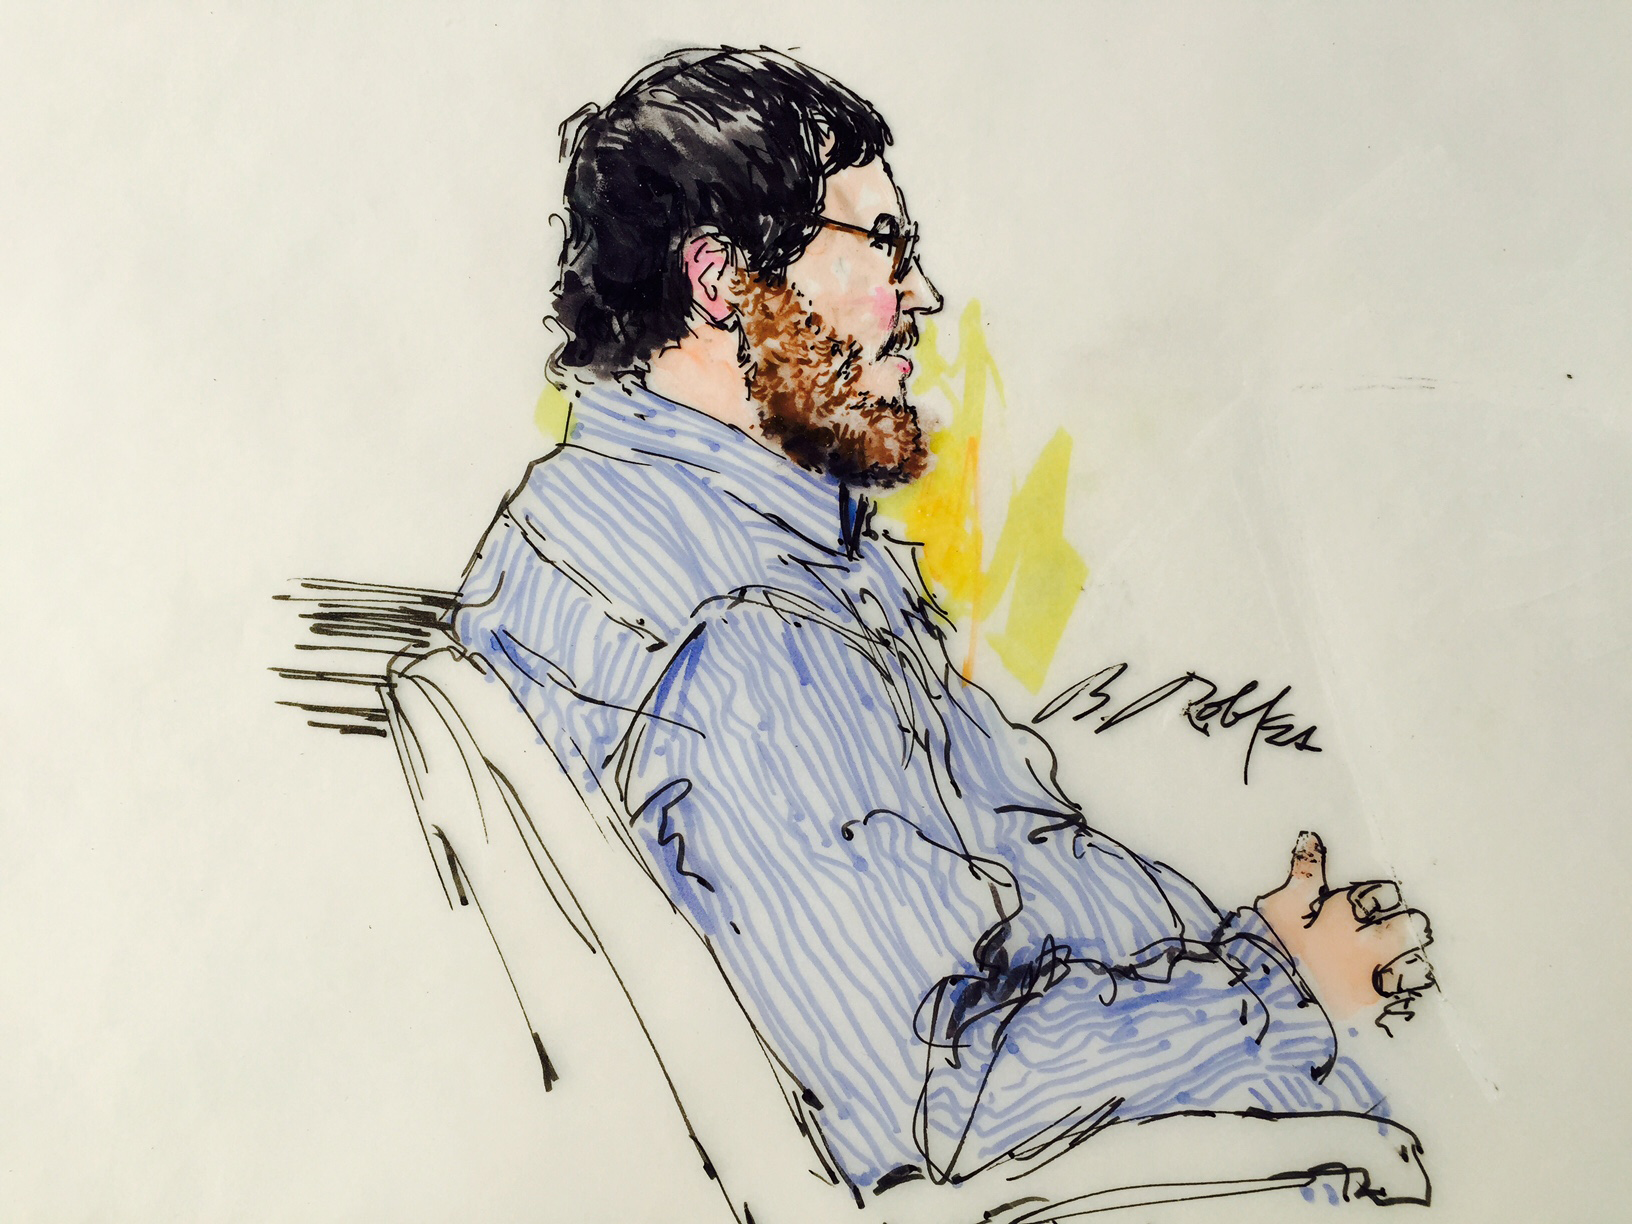 Photo: James Holmes sketch, profile, Aurora theater shooting trial